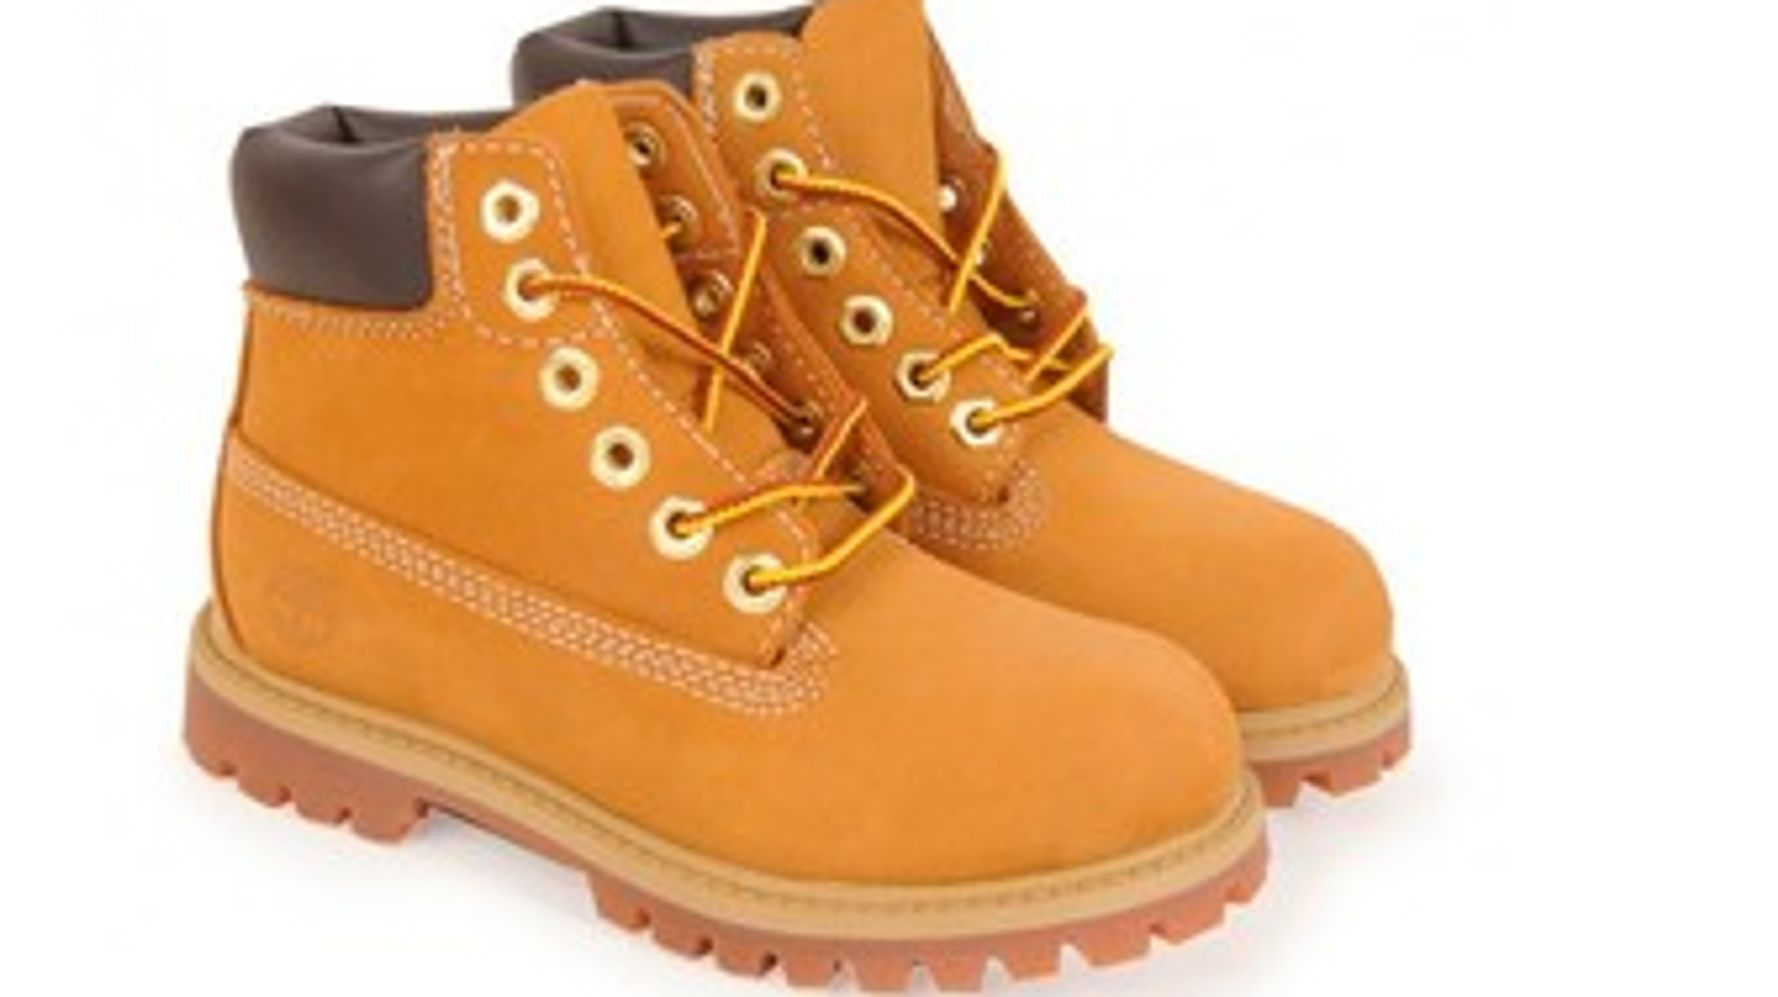 b40e6c7de47 How To Wear Timberland Boots And Not Look Ridiculous | HuffPost Life